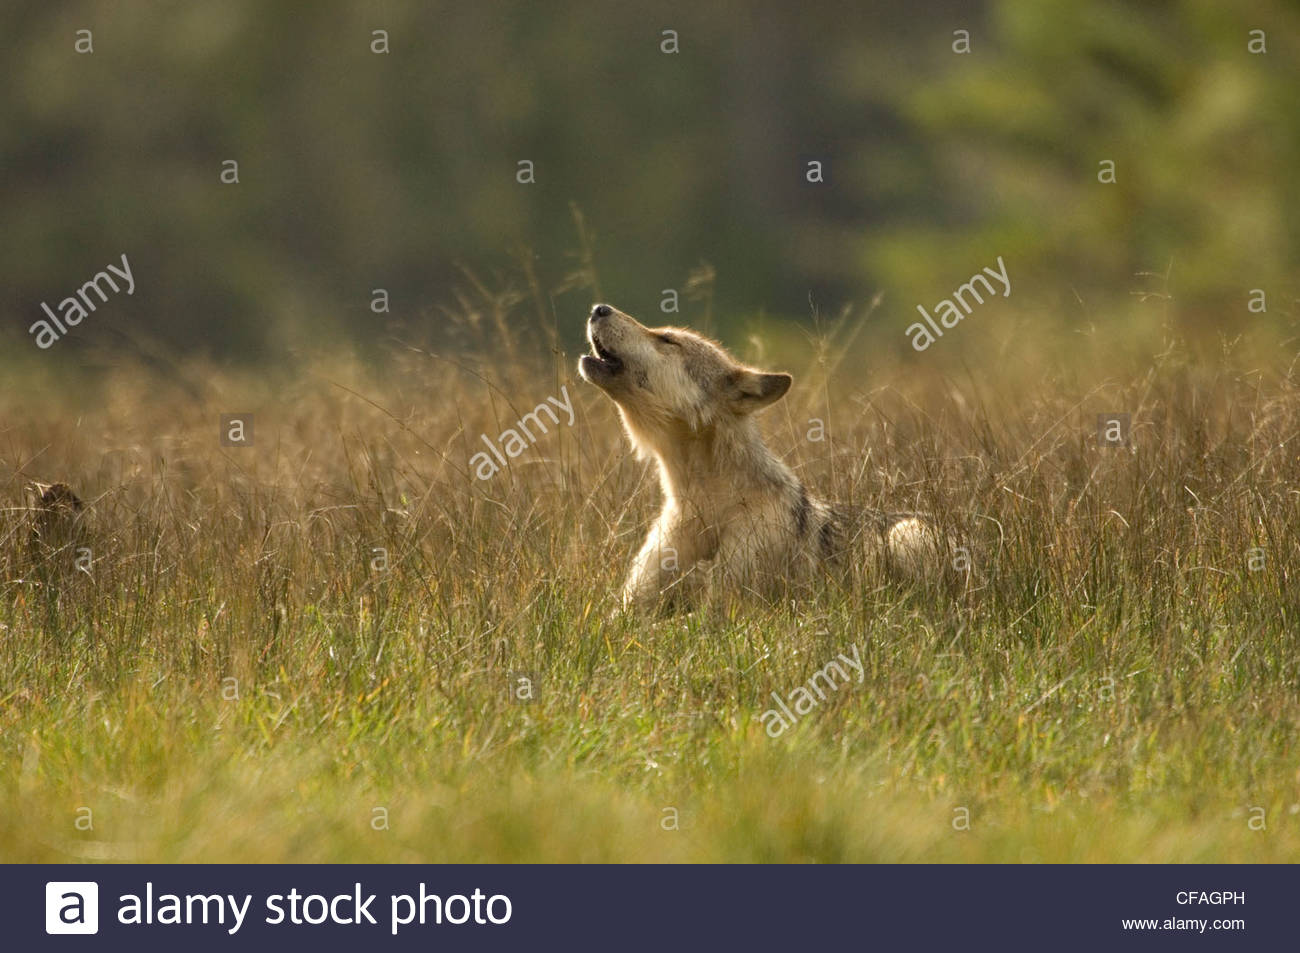 Wolf puppy howling, Great Bear Rainforest, British Columbia, Canada. - Stock Image